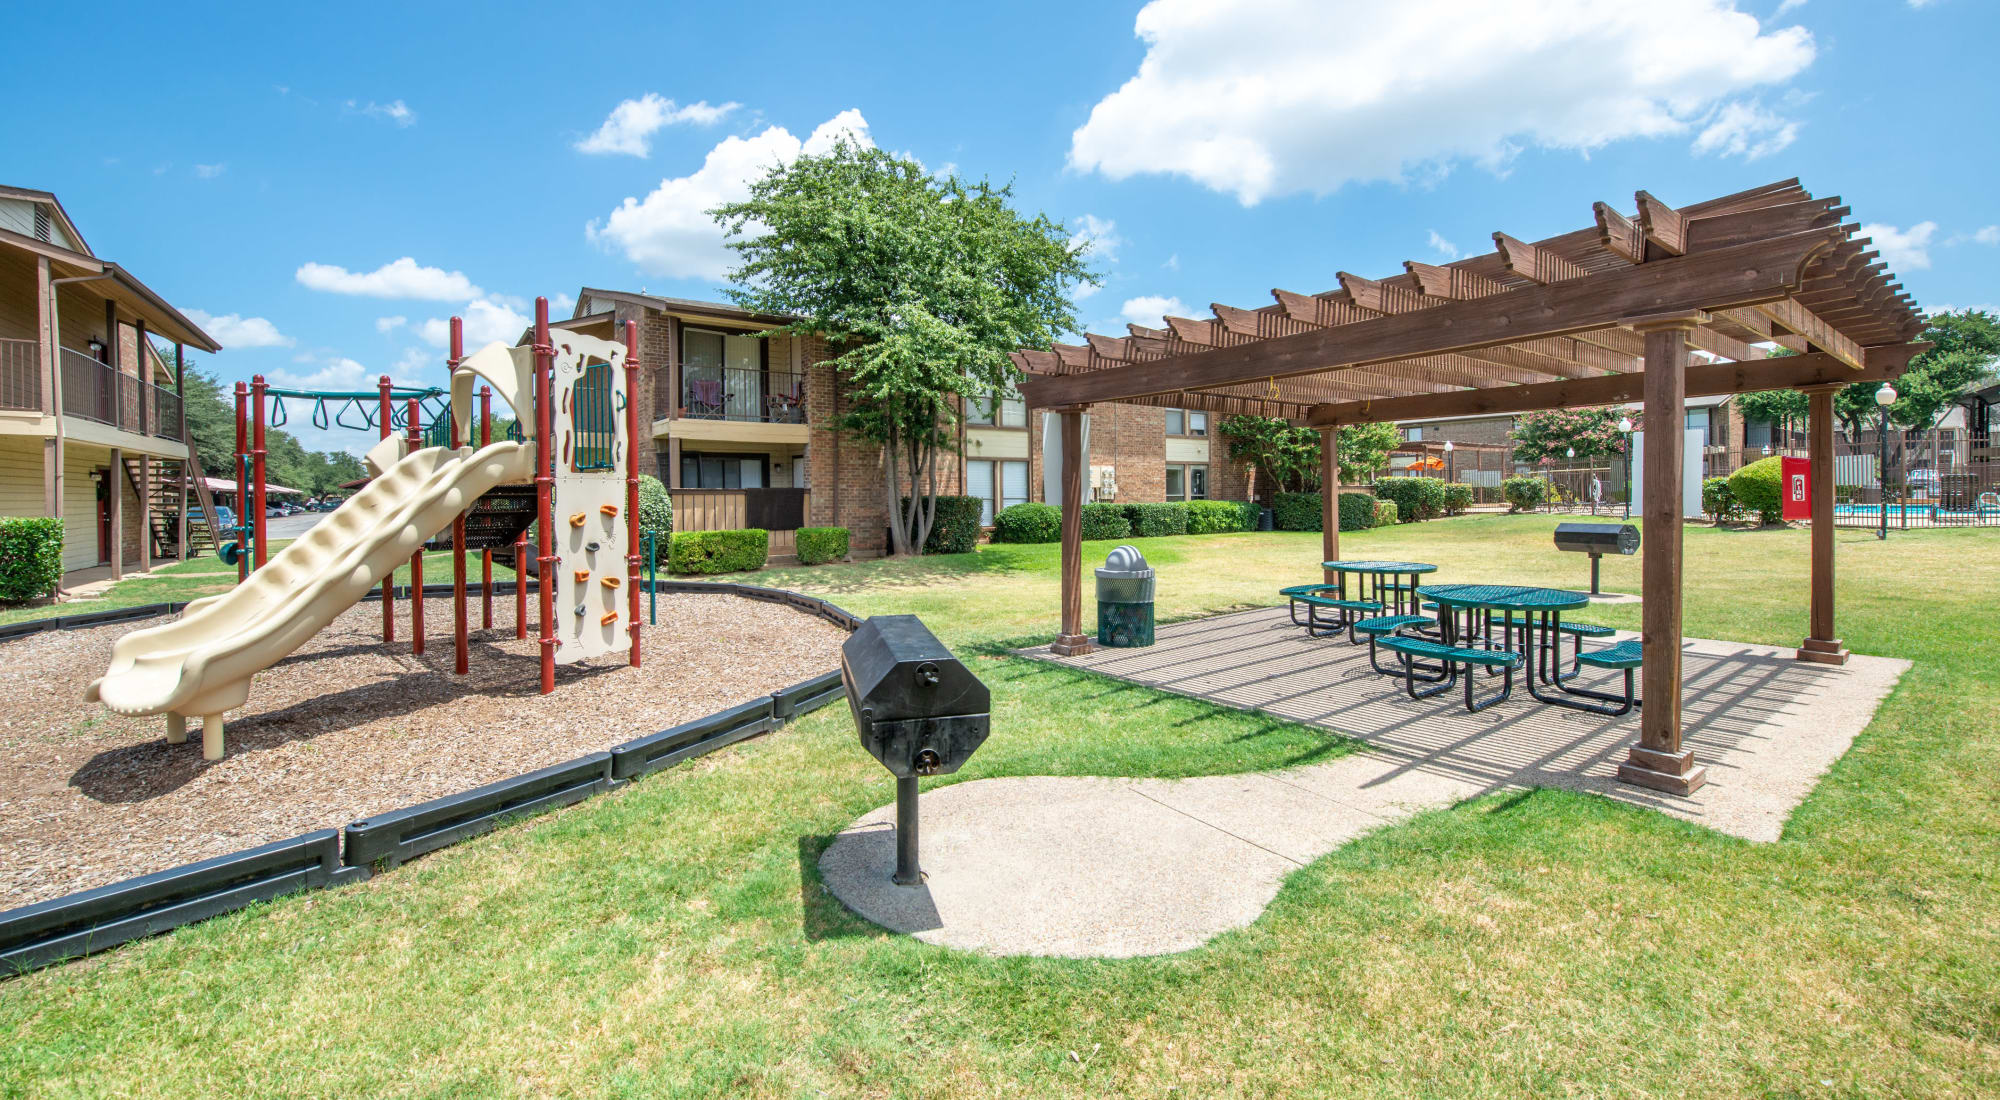 Photo gallery at 8500 Harwood Apartment Homes in North Richland Hills, Texas